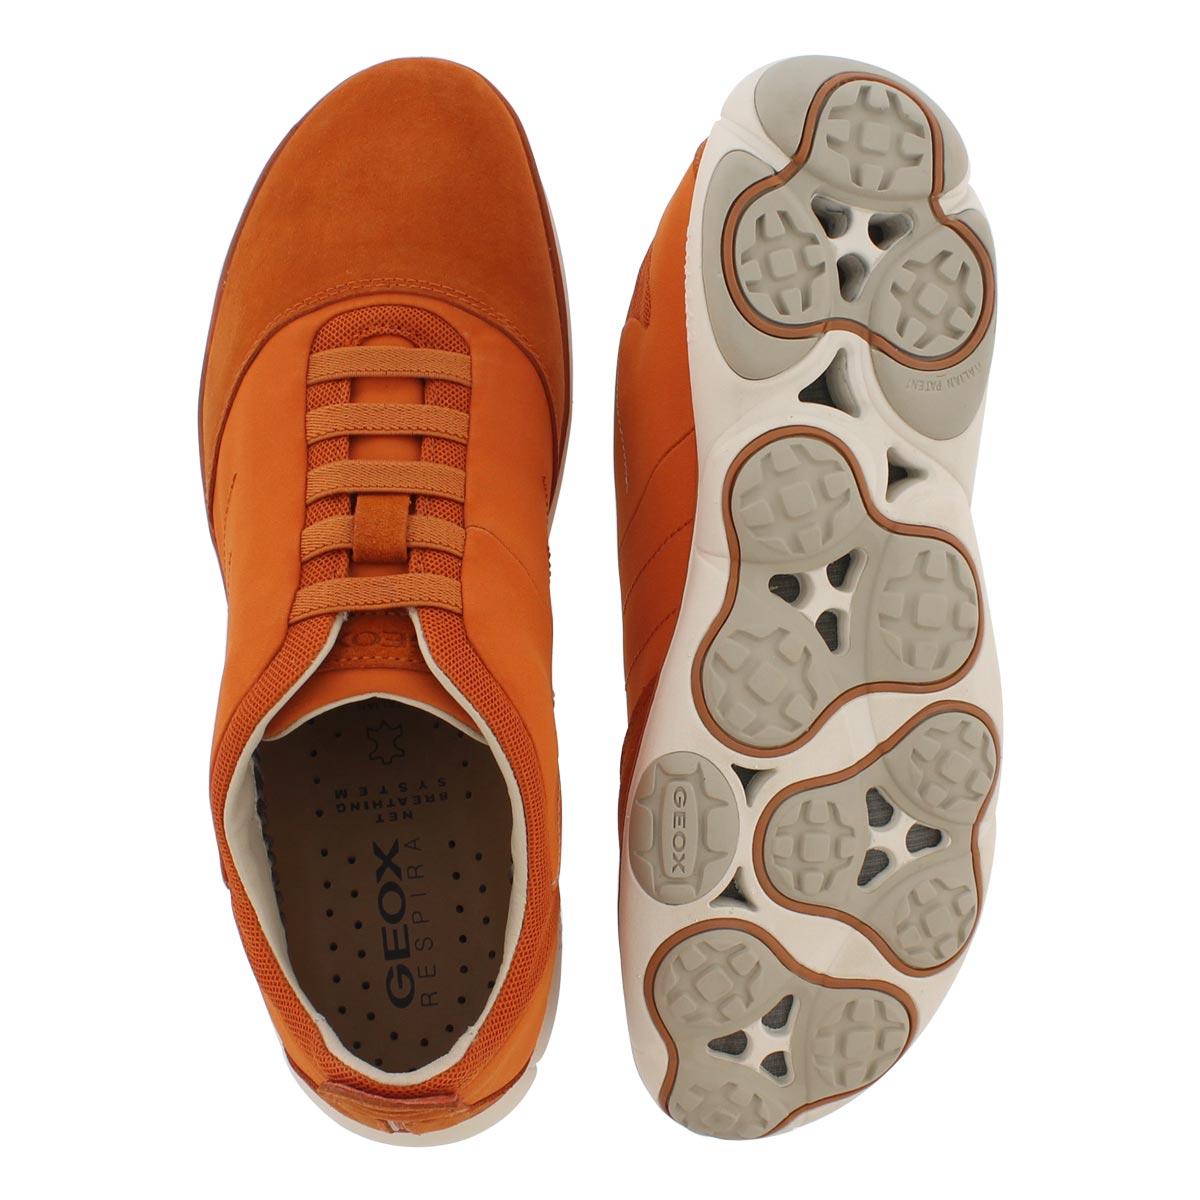 Mns Nebula orange lace up running shoe